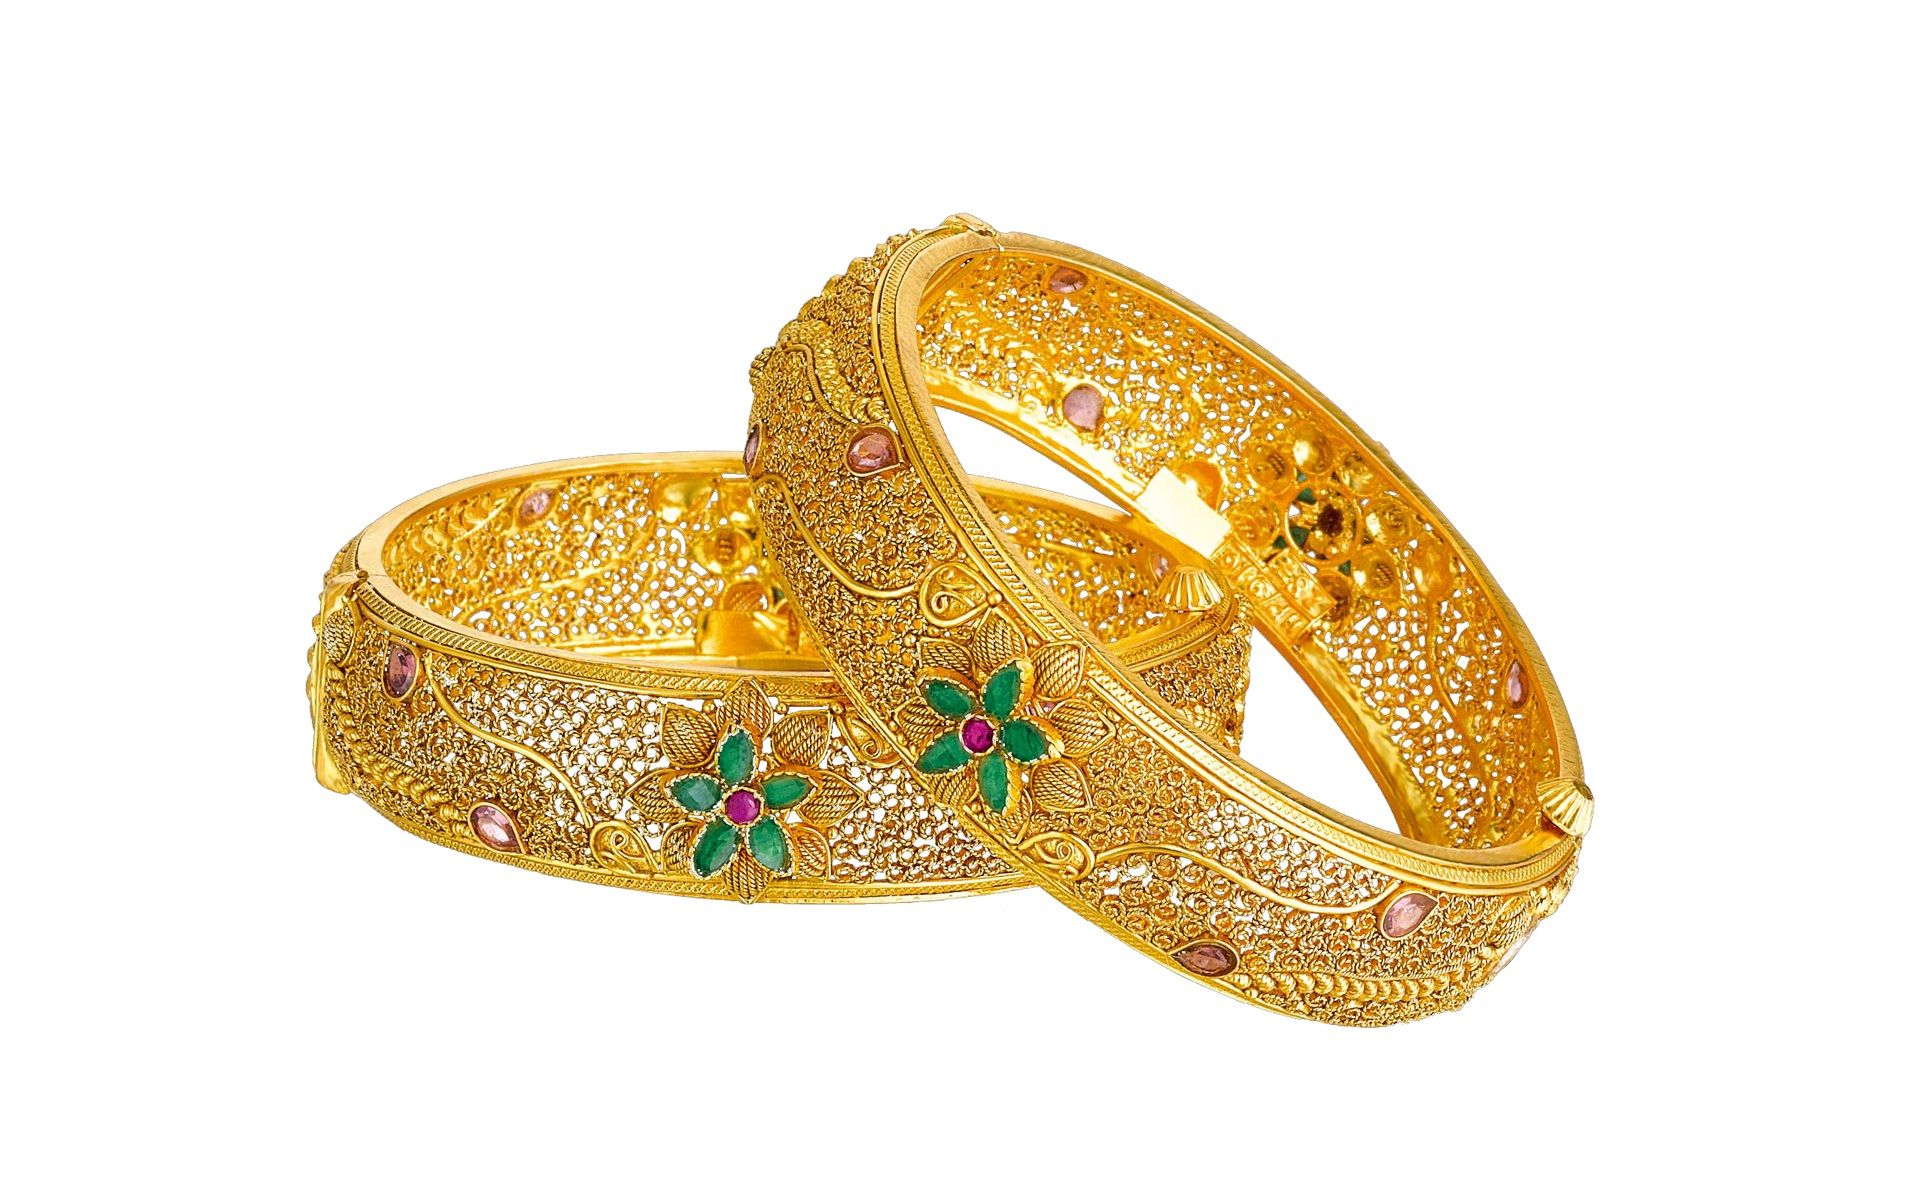 Clipart pune gold bangles design image transparent Golden Jewellery bangle Hd Wallpapers | Jewellery in 2019 | Gold ... image transparent